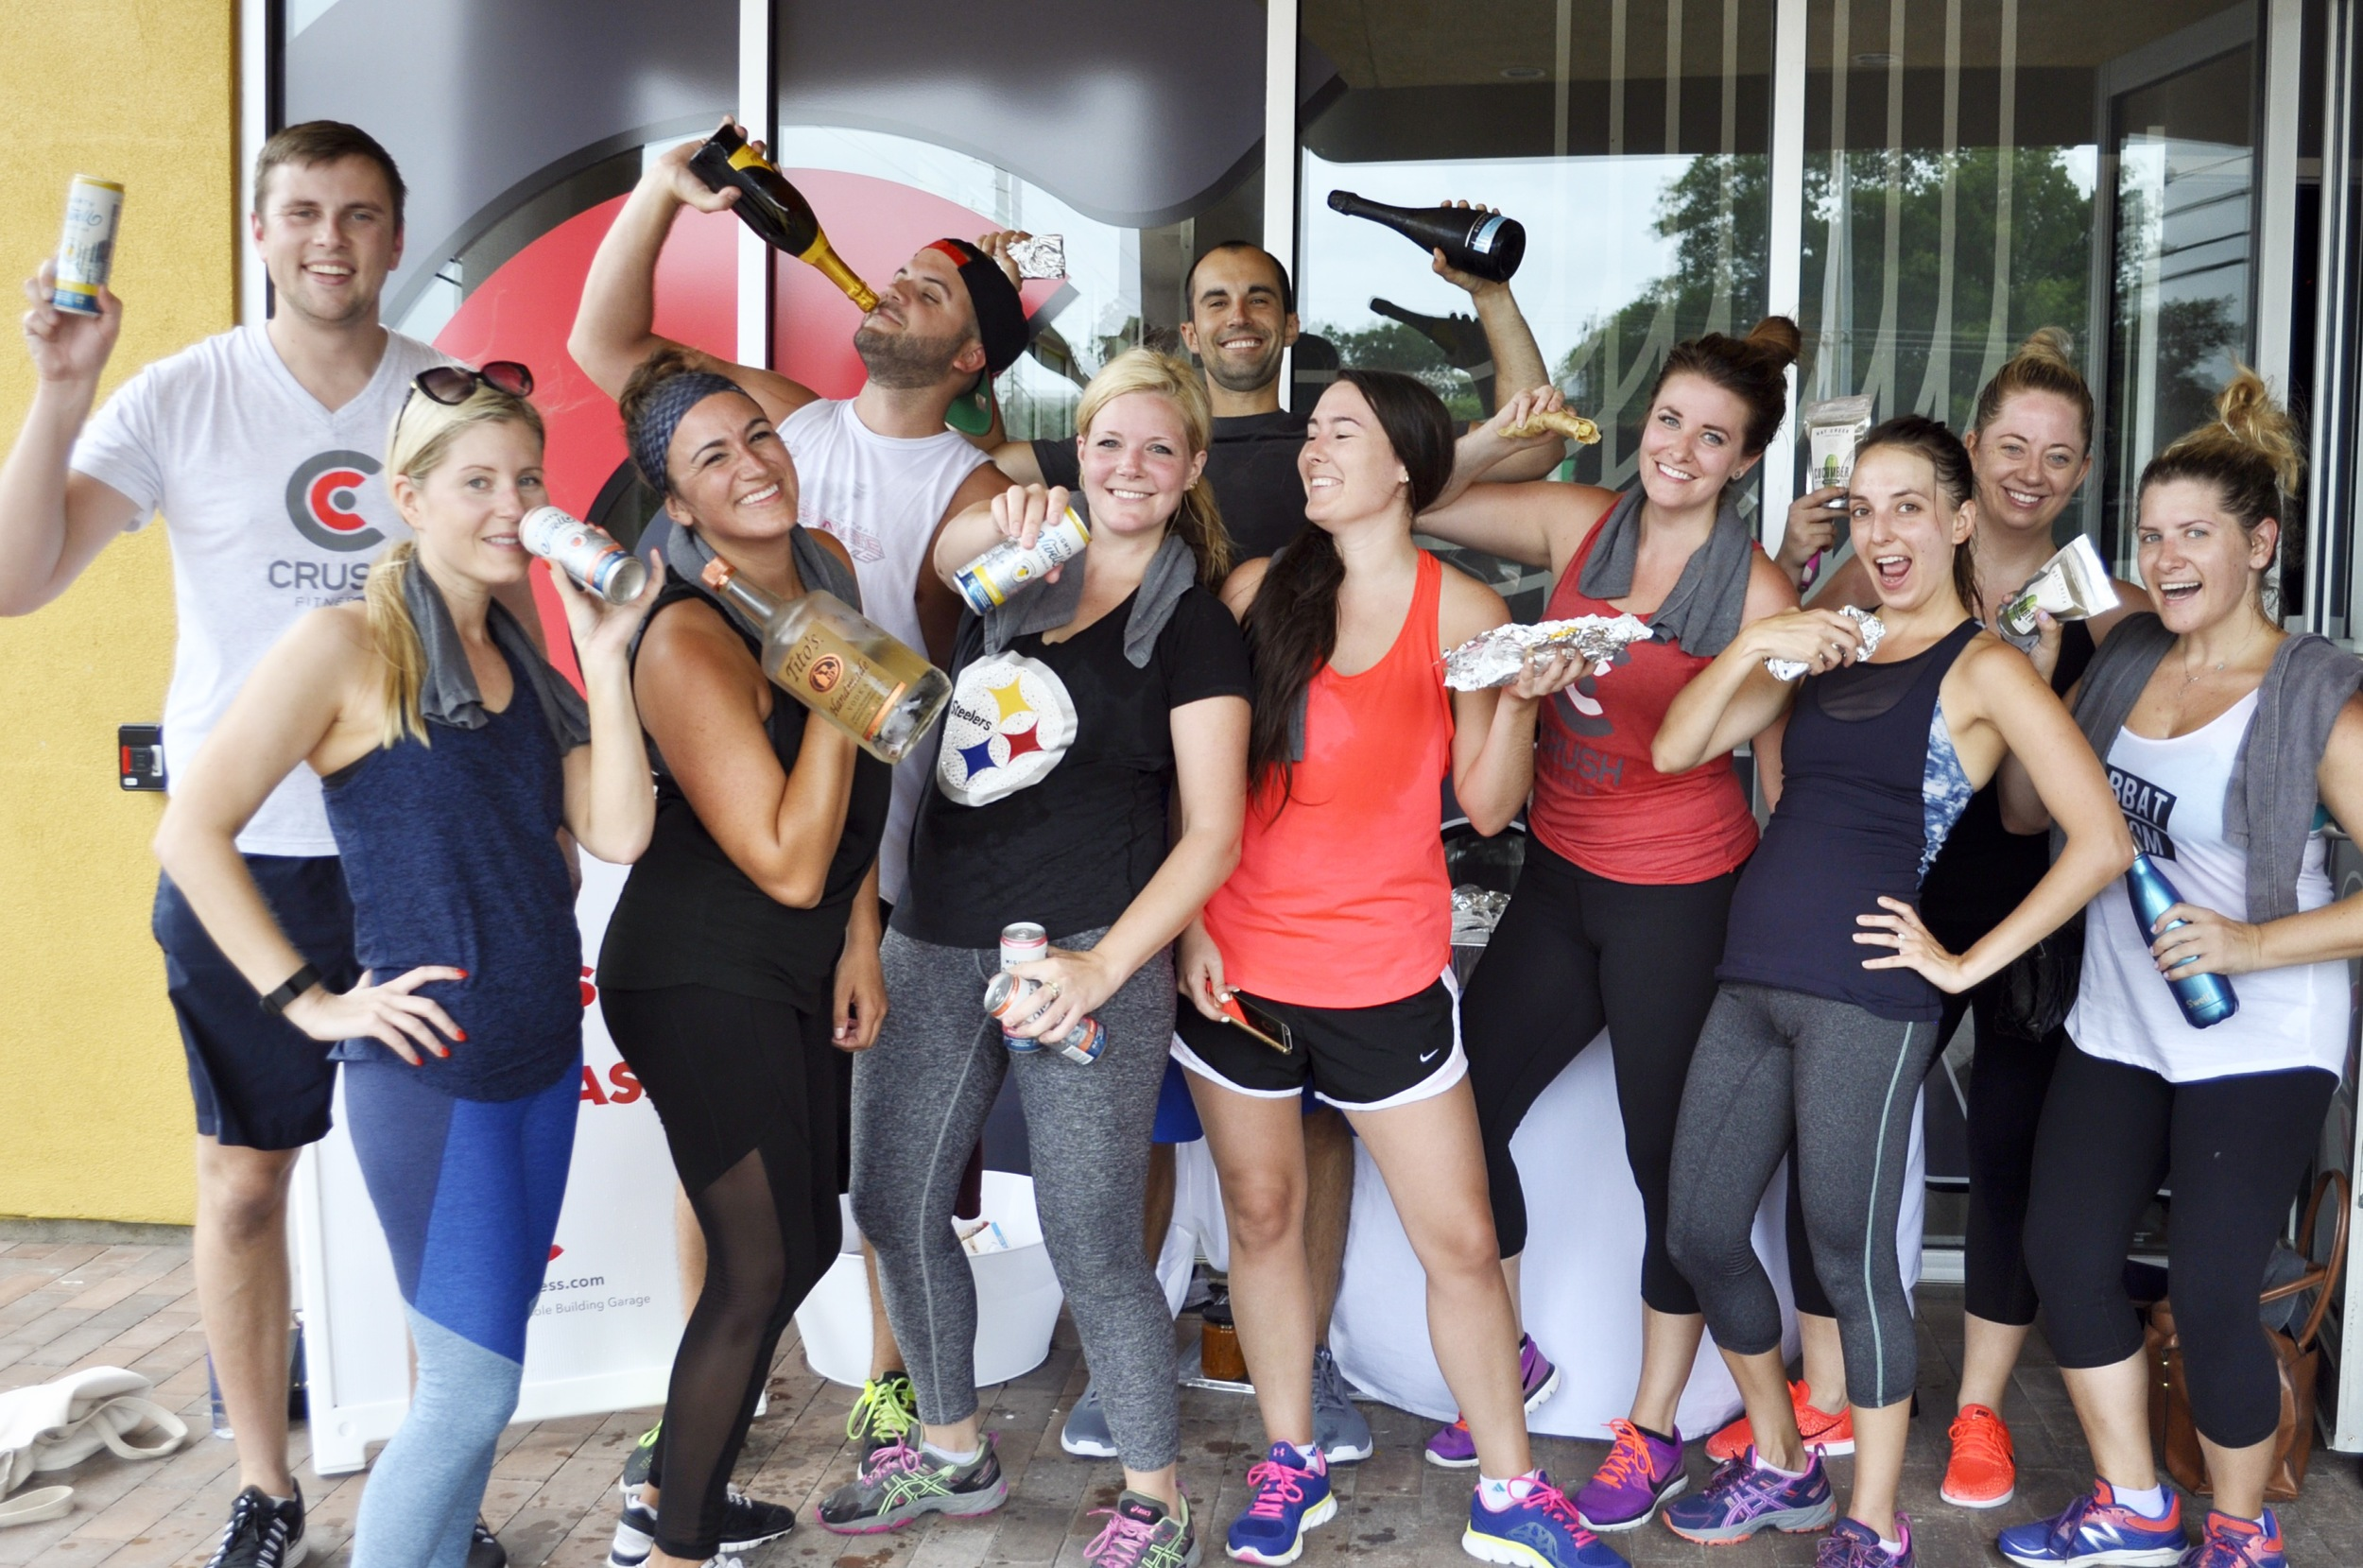 Celebrating AFTER the Crush Fitness blogger event